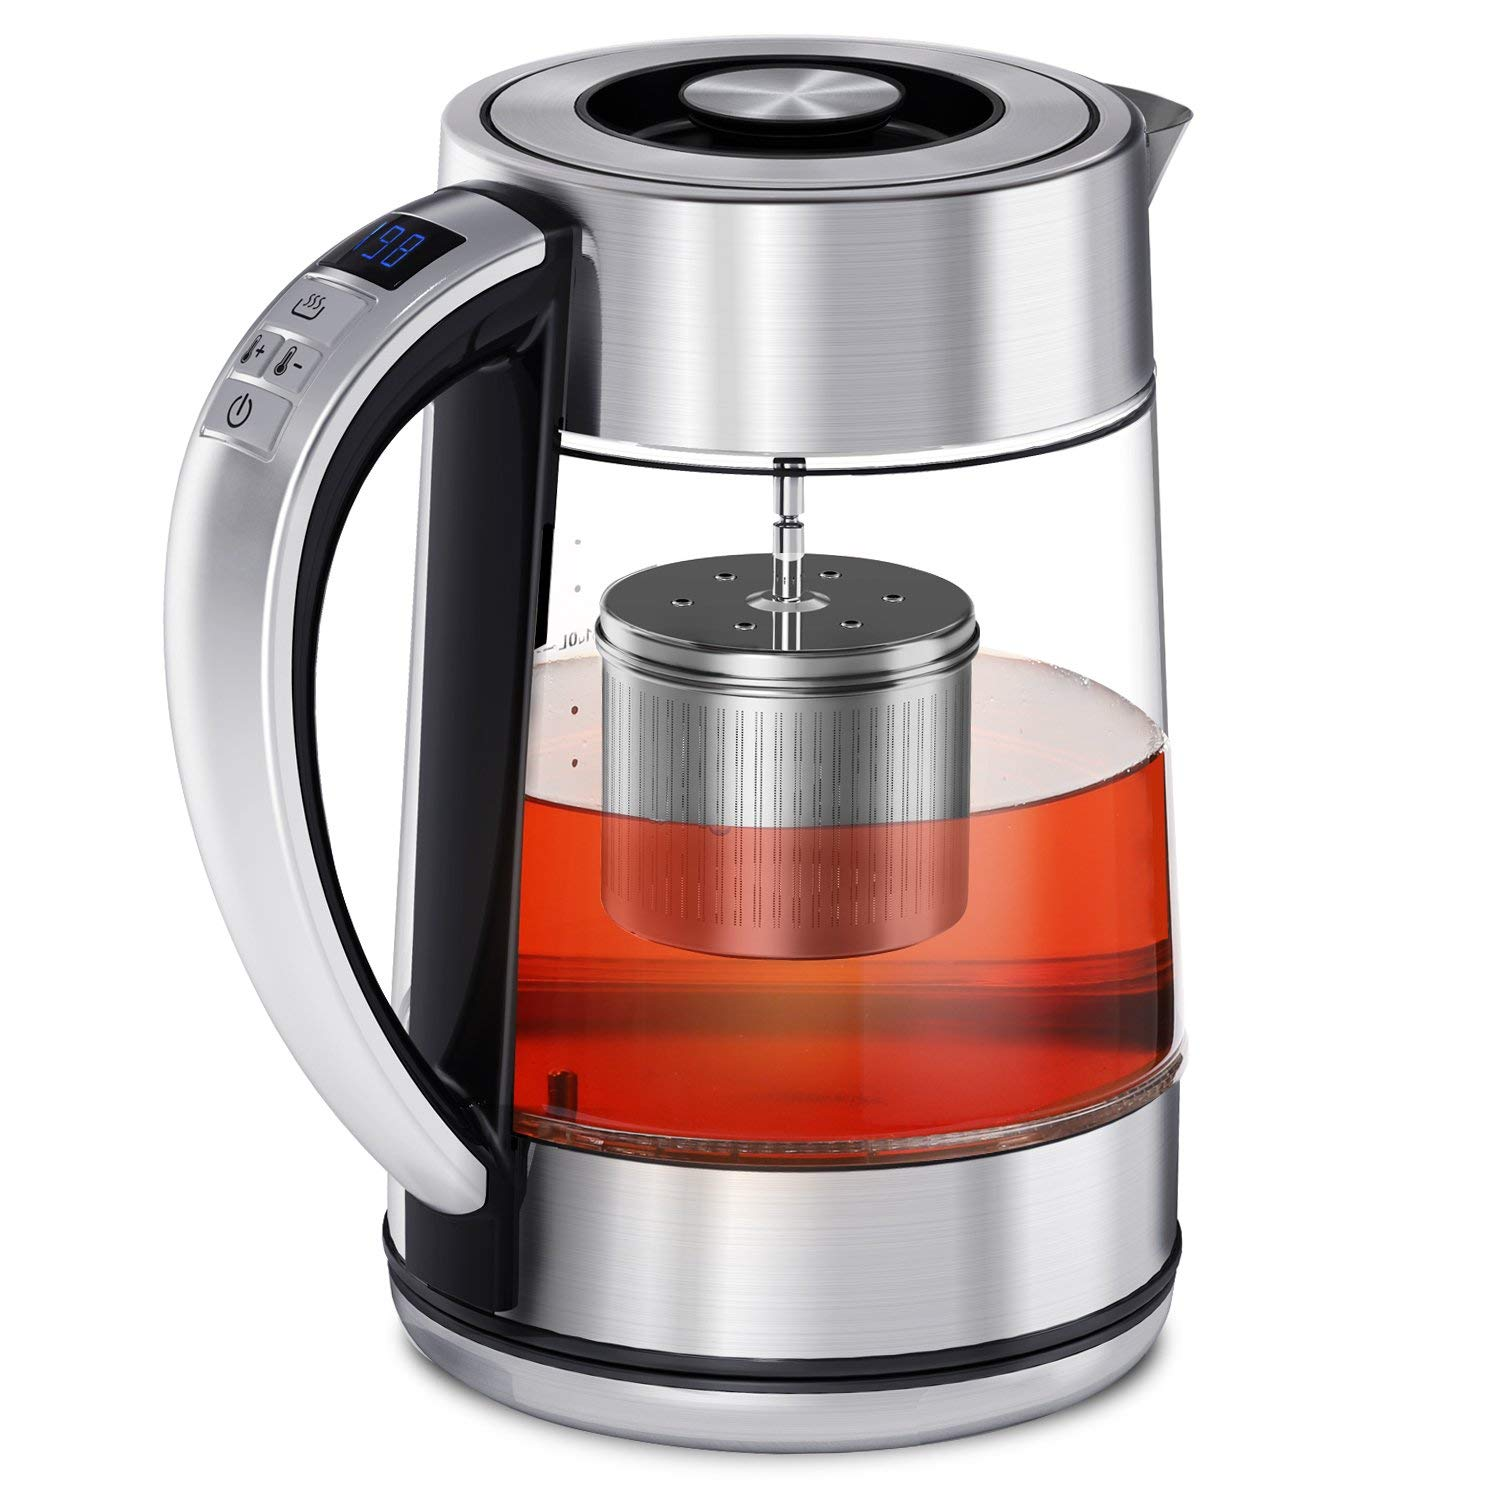 CISNO 2 in 1 Electric Tea Kettle with Temperature Control,